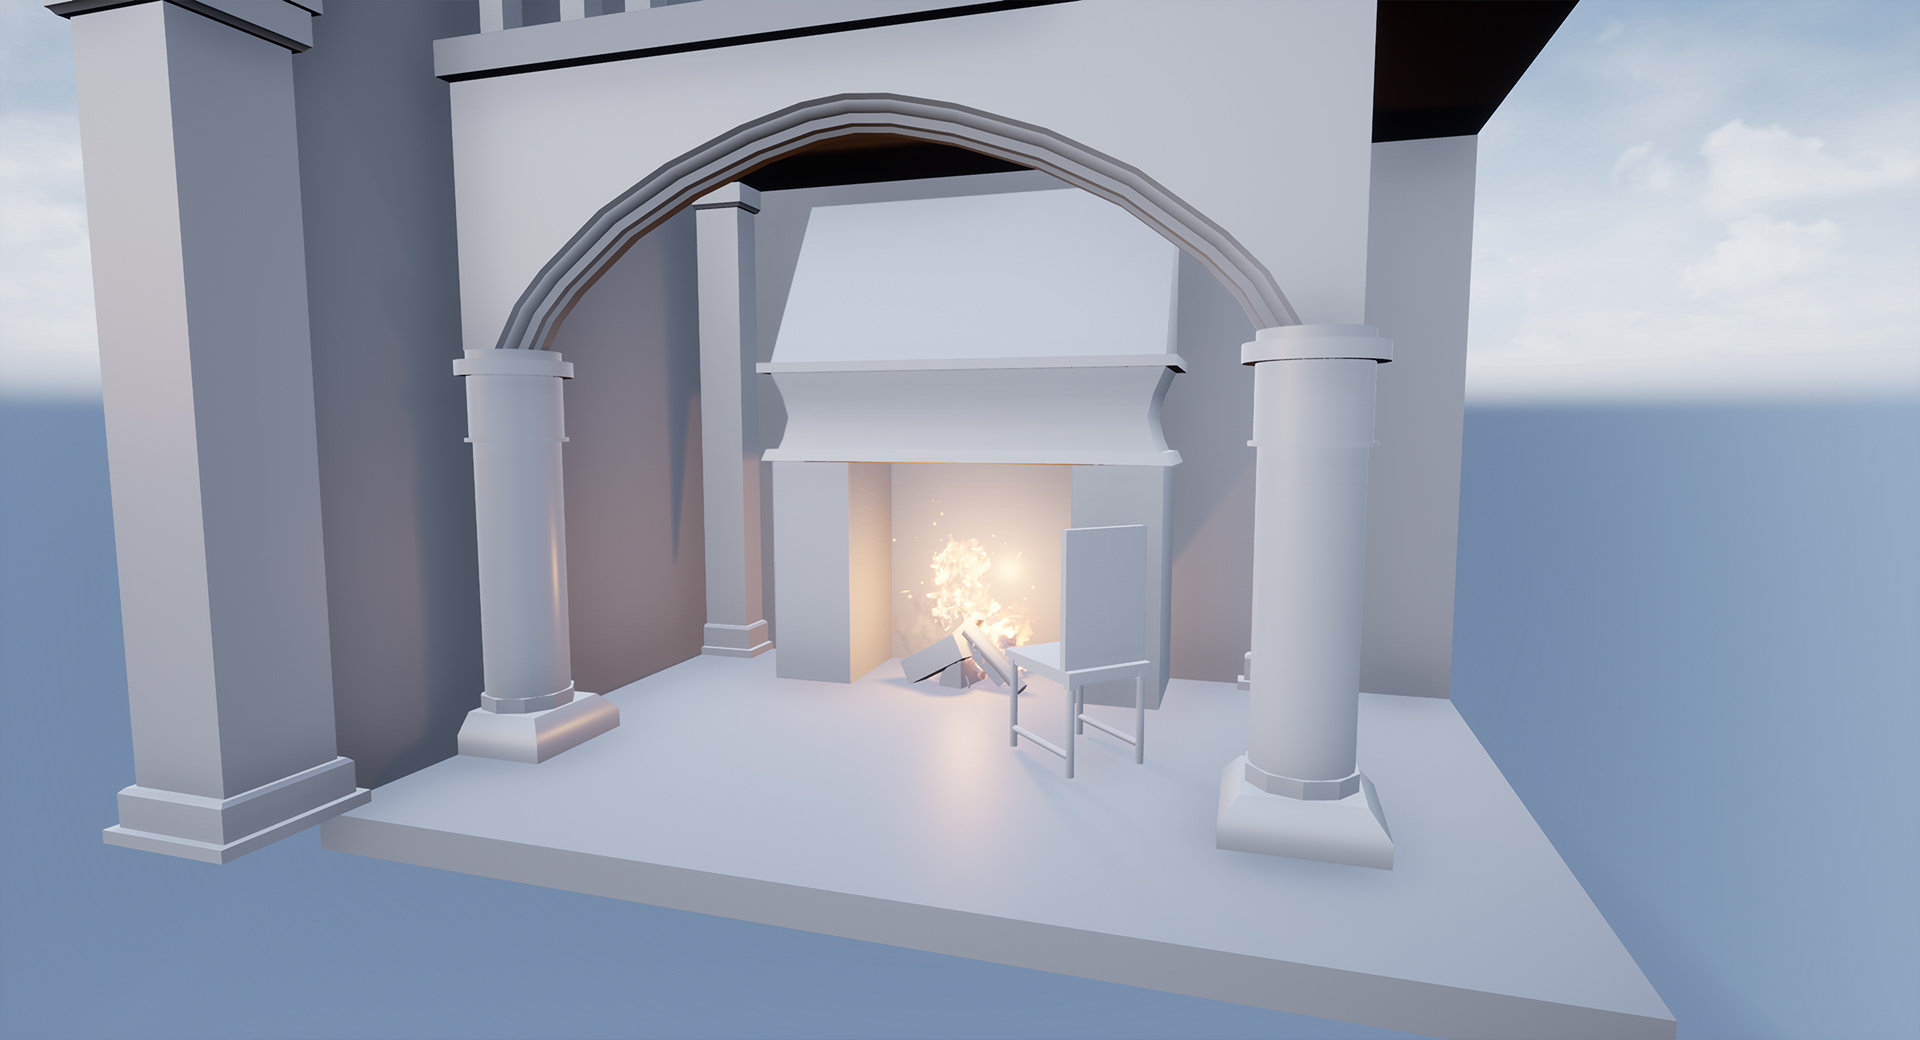 Gothic France Architecture Diorama W I P — polycount